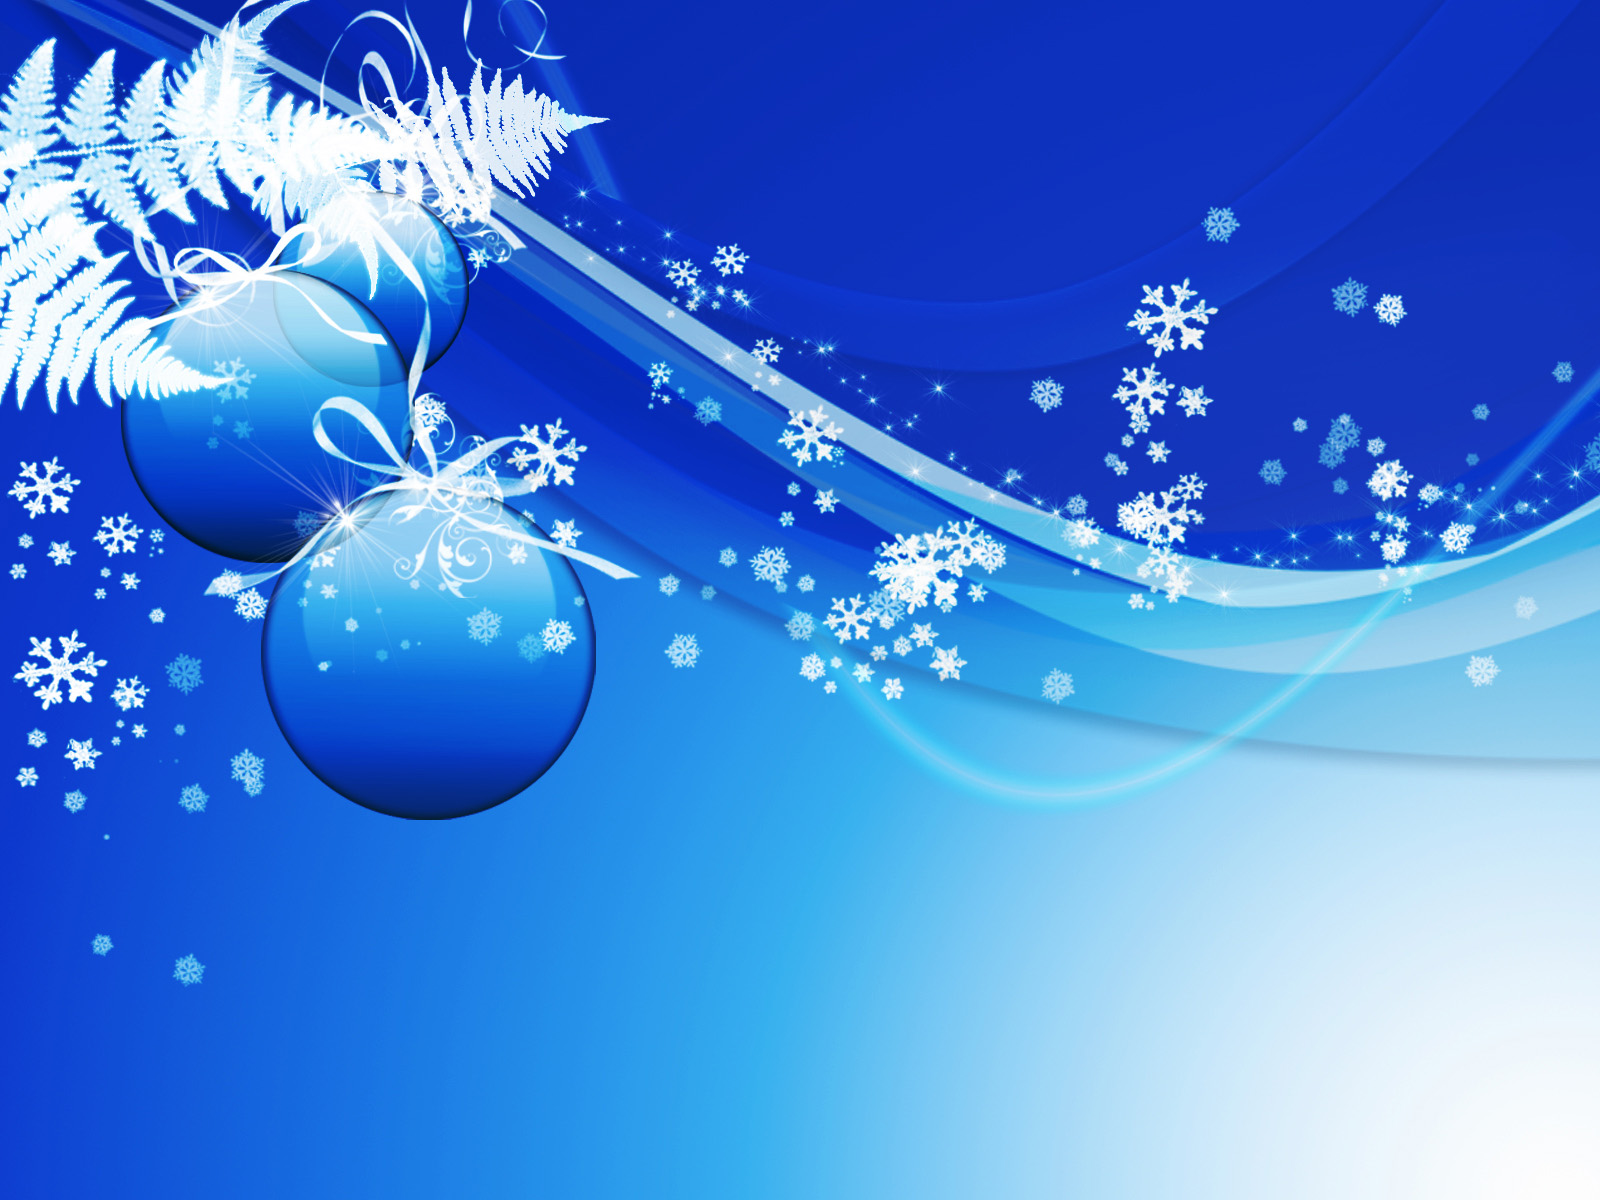 Christmas Holiday Backgrounds | Wallpapers High Definition ...